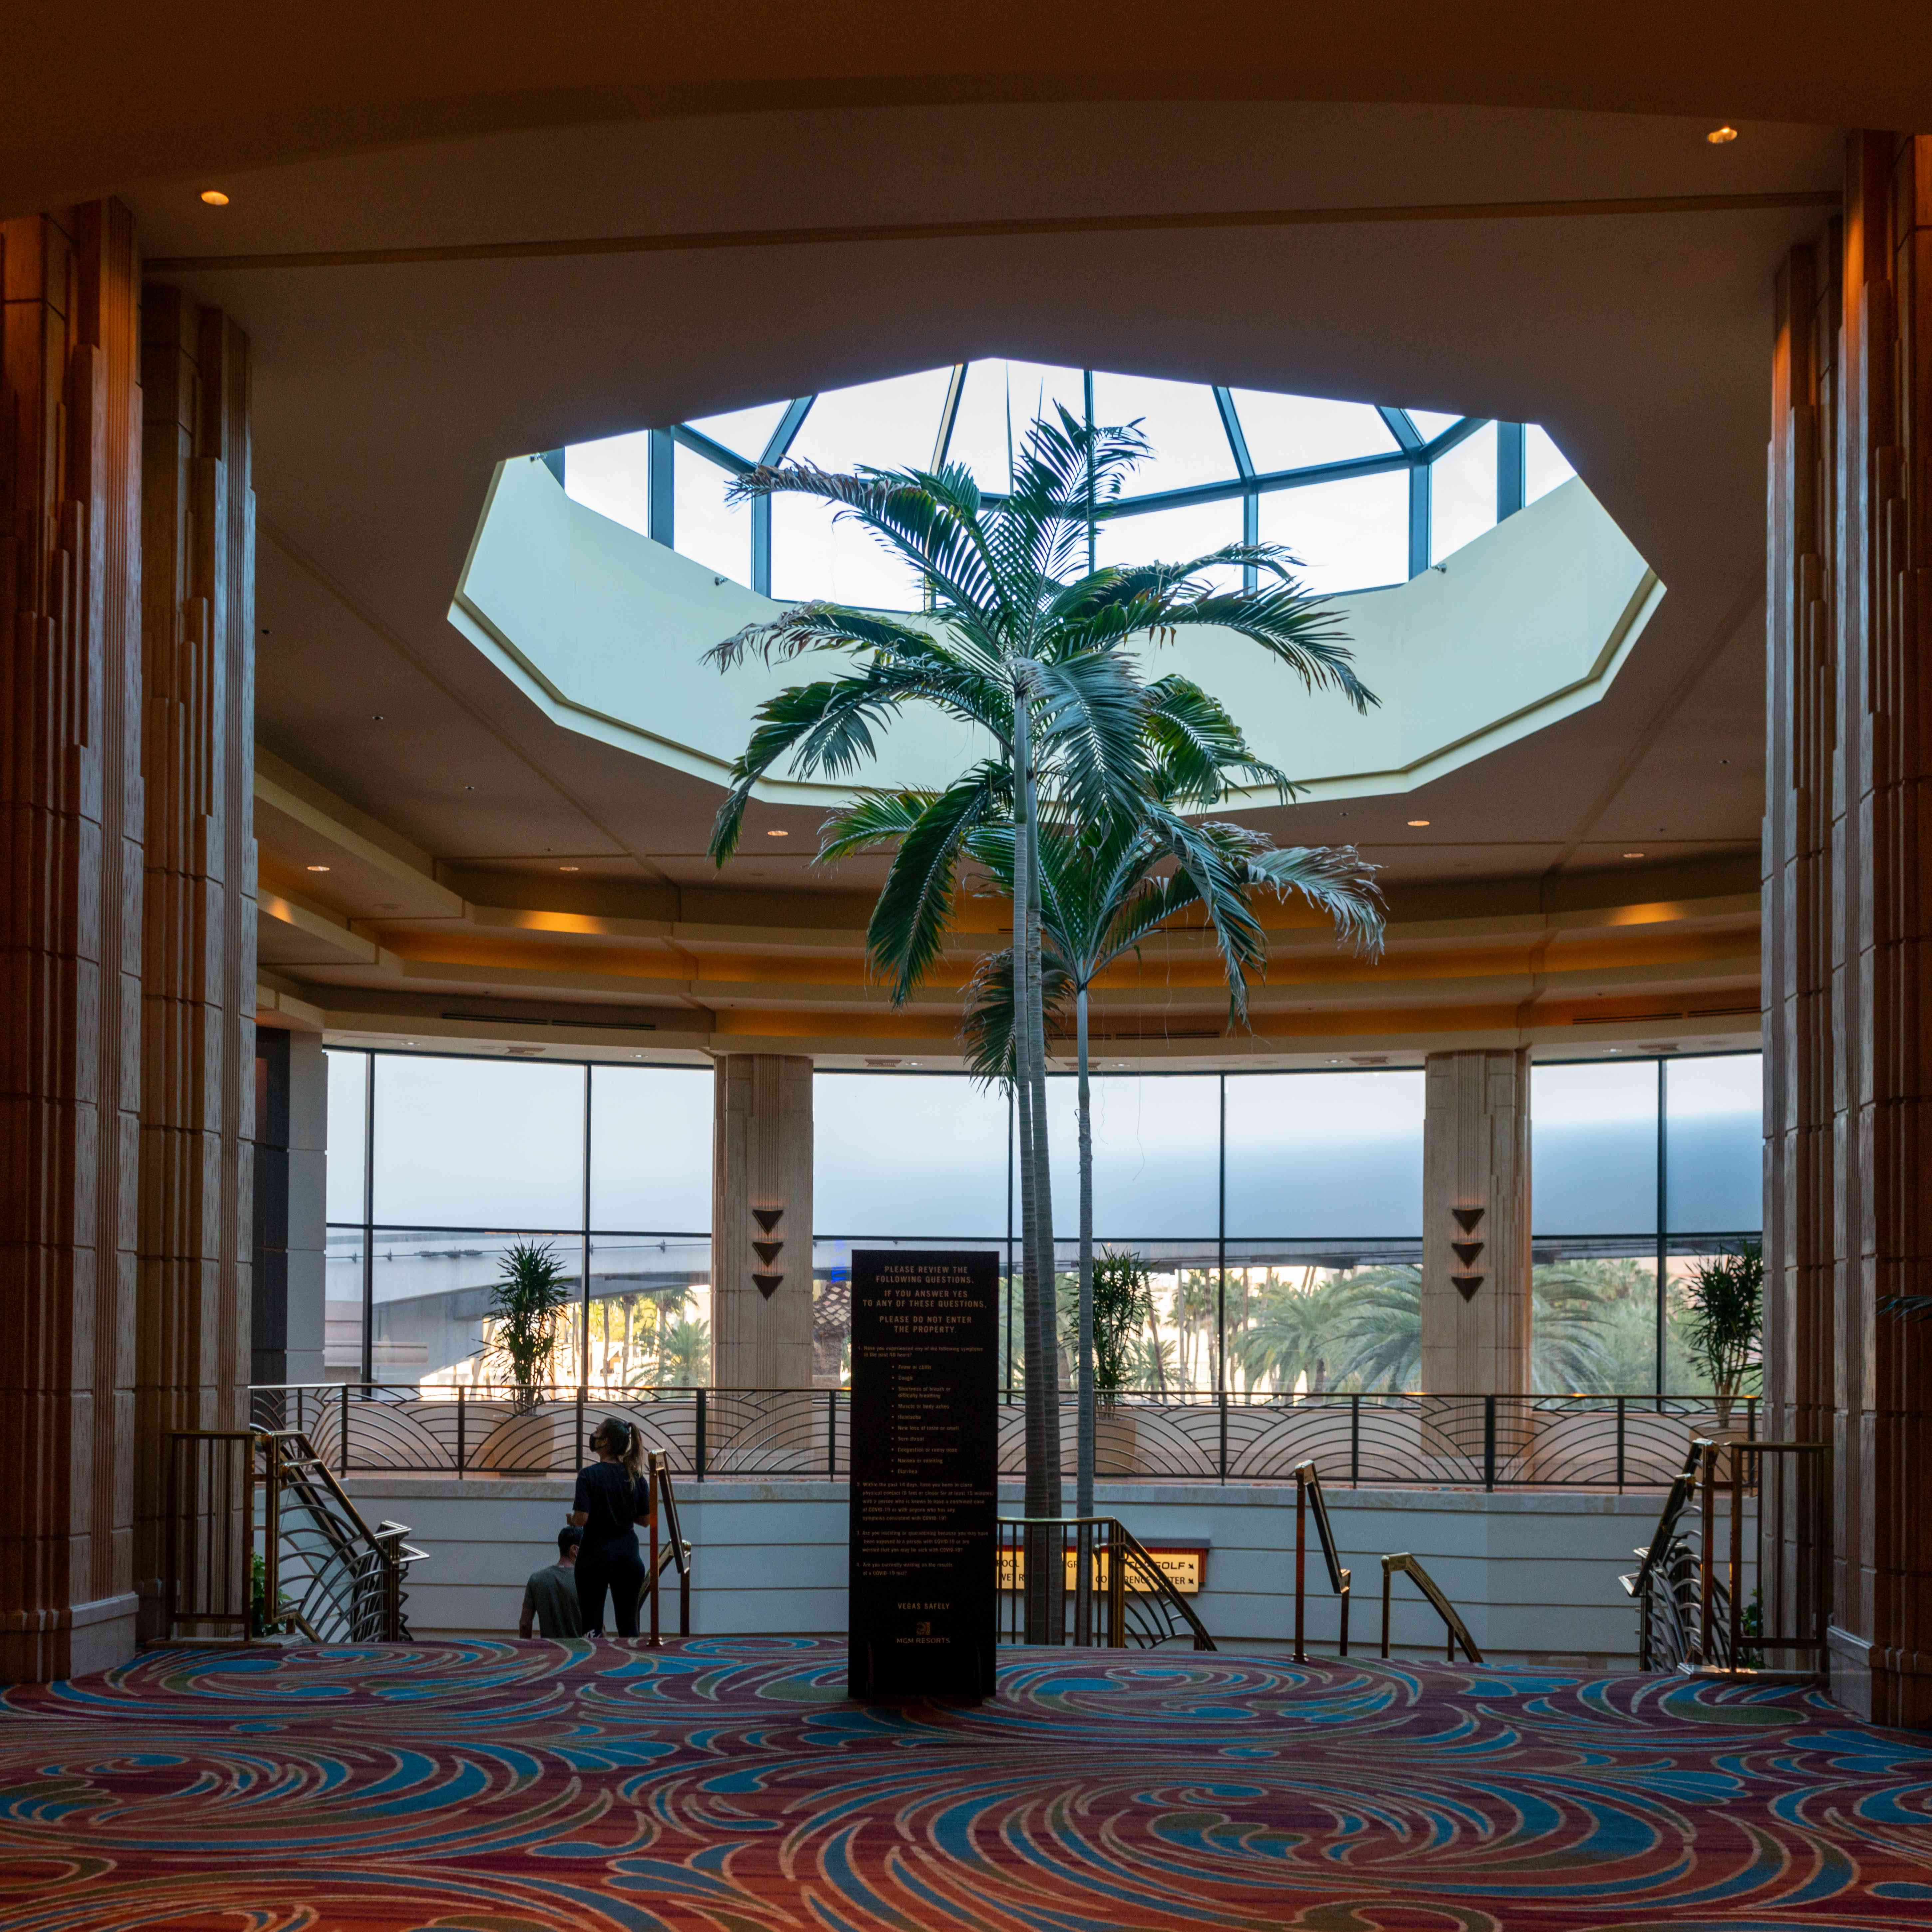 Lobby in MGM Grand